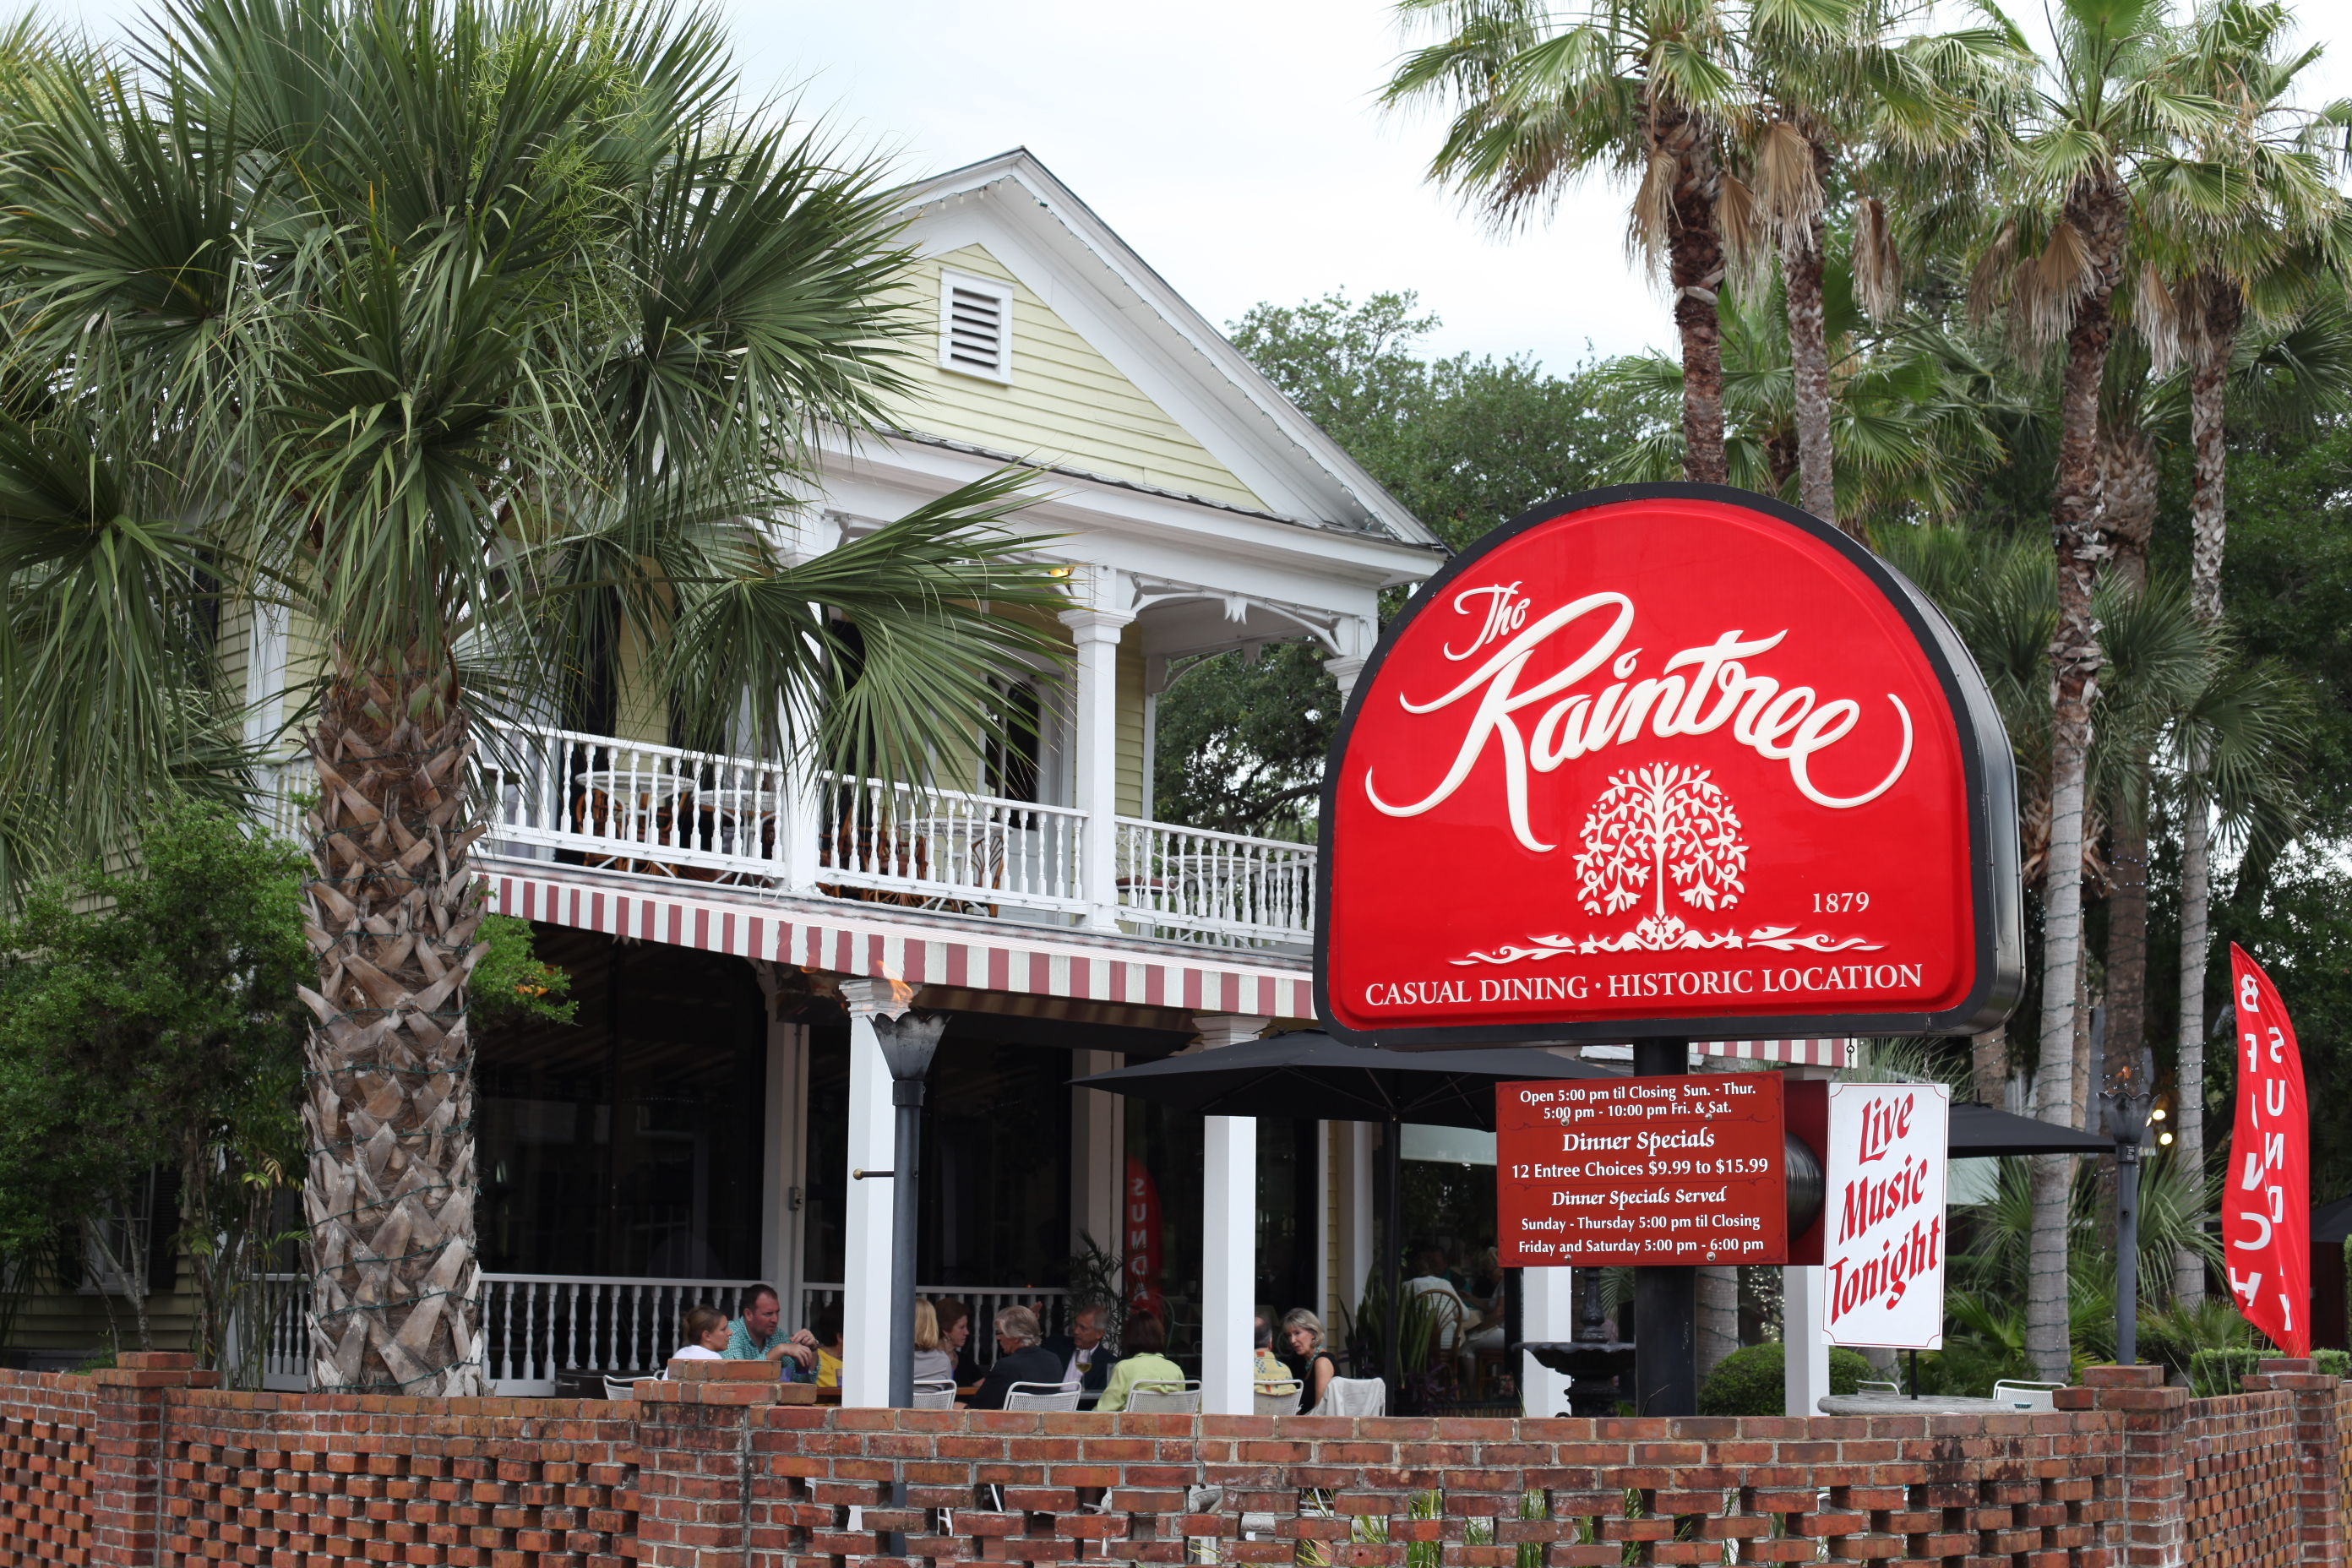 Raintree Restaurant, 102 San Marco Ave., is a local favorite, serving dinner seven days a week in turn-of-the-century house. Photos by RENEE UNSWORTH